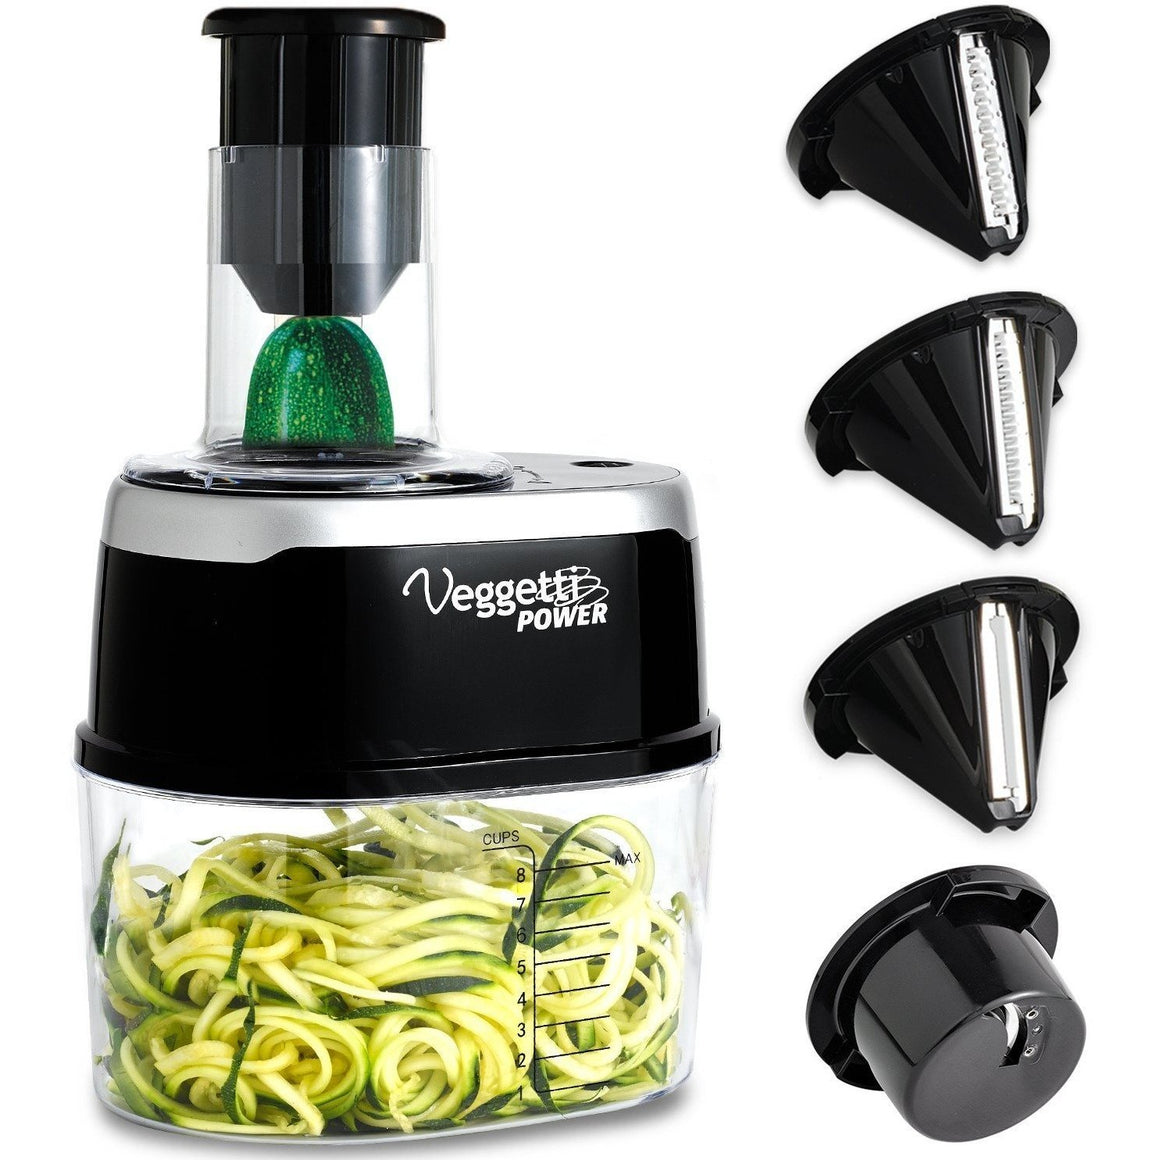 OnTel - Veggetti Power 4-in-1 Electric Spiralizer - Wholesale Home Improvement Products